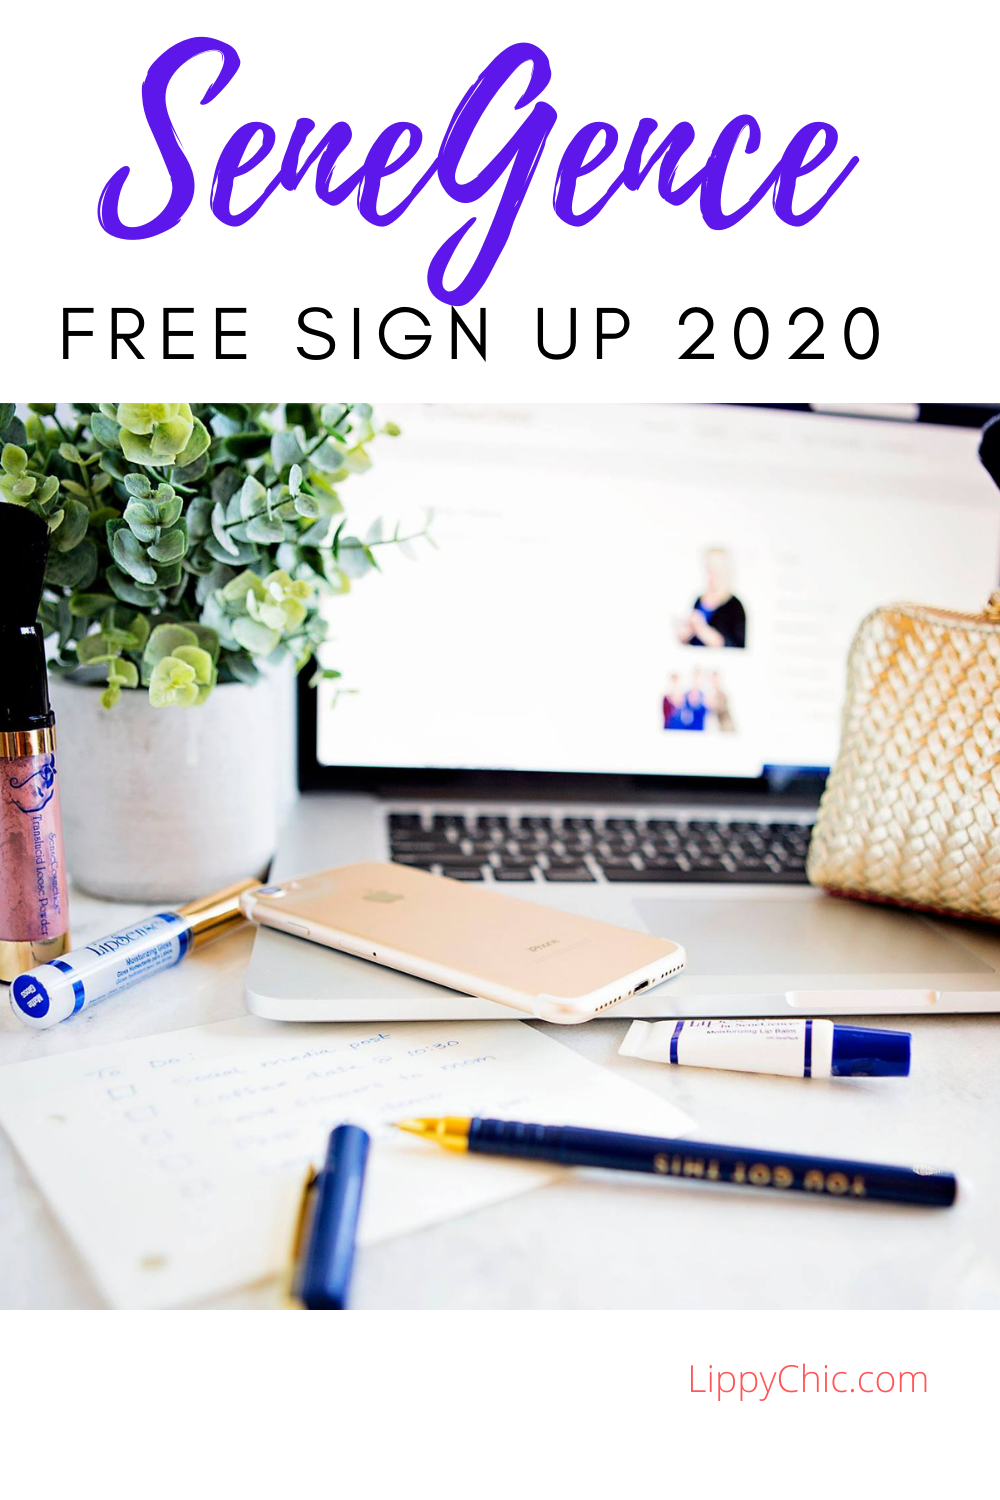 SeneGence Free Sign Up 2020